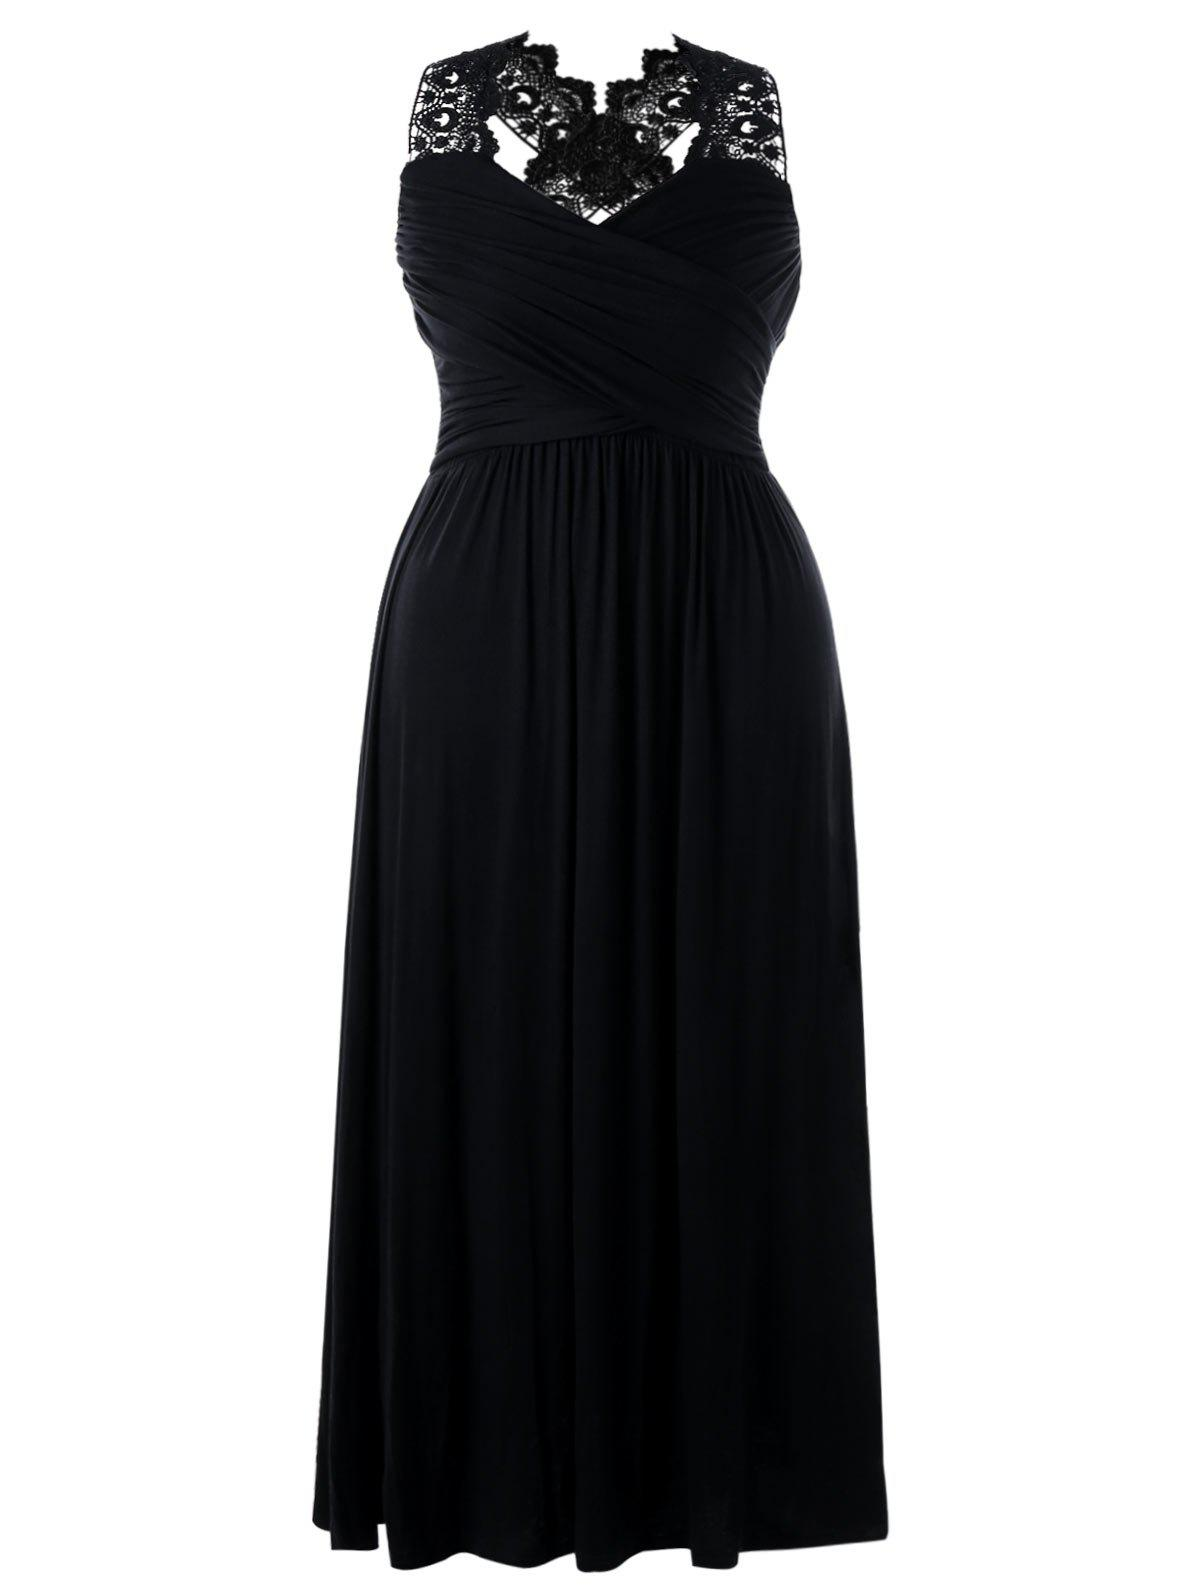 Empire Waist Plus Size Maxi Sweetheart DressWOMEN<br><br>Size: XL; Color: BLACK; Style: Casual; Material: Polyester,Spandex; Silhouette: A-Line; Dresses Length: Ankle-Length; Neckline: Sweetheart Neck; Sleeve Length: Sleeveless; Pattern Type: Solid; With Belt: No; Season: Fall,Spring,Summer; Weight: 0.3500kg; Package Contents: 1 x Dress;